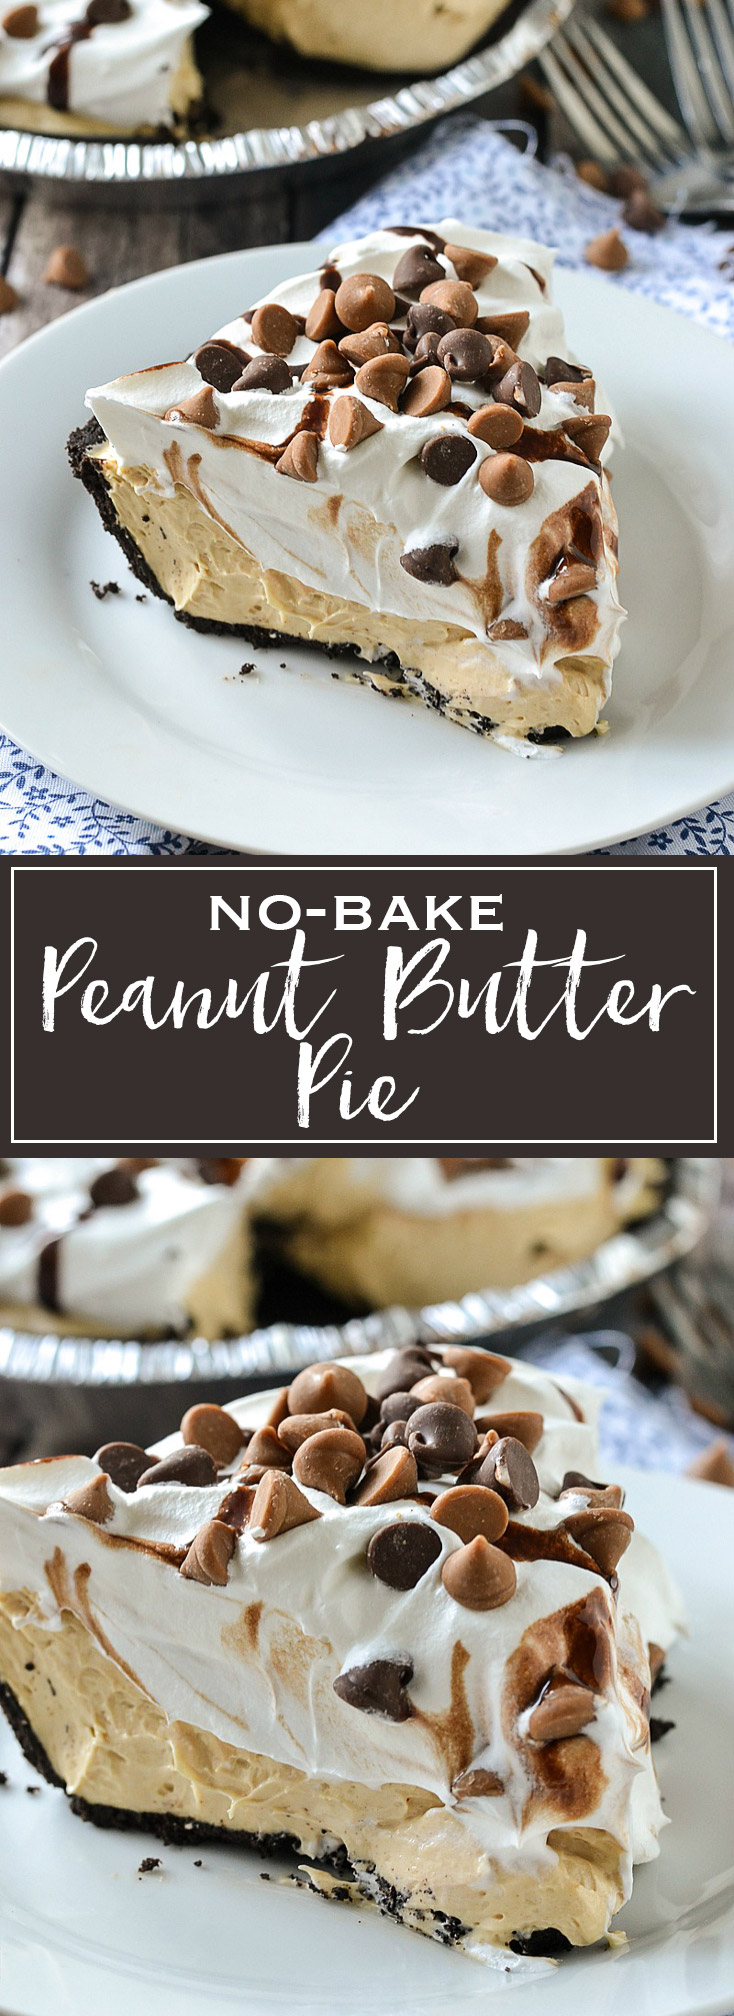 No-Bake Peanut Butter Pie | www.motherthyme.com